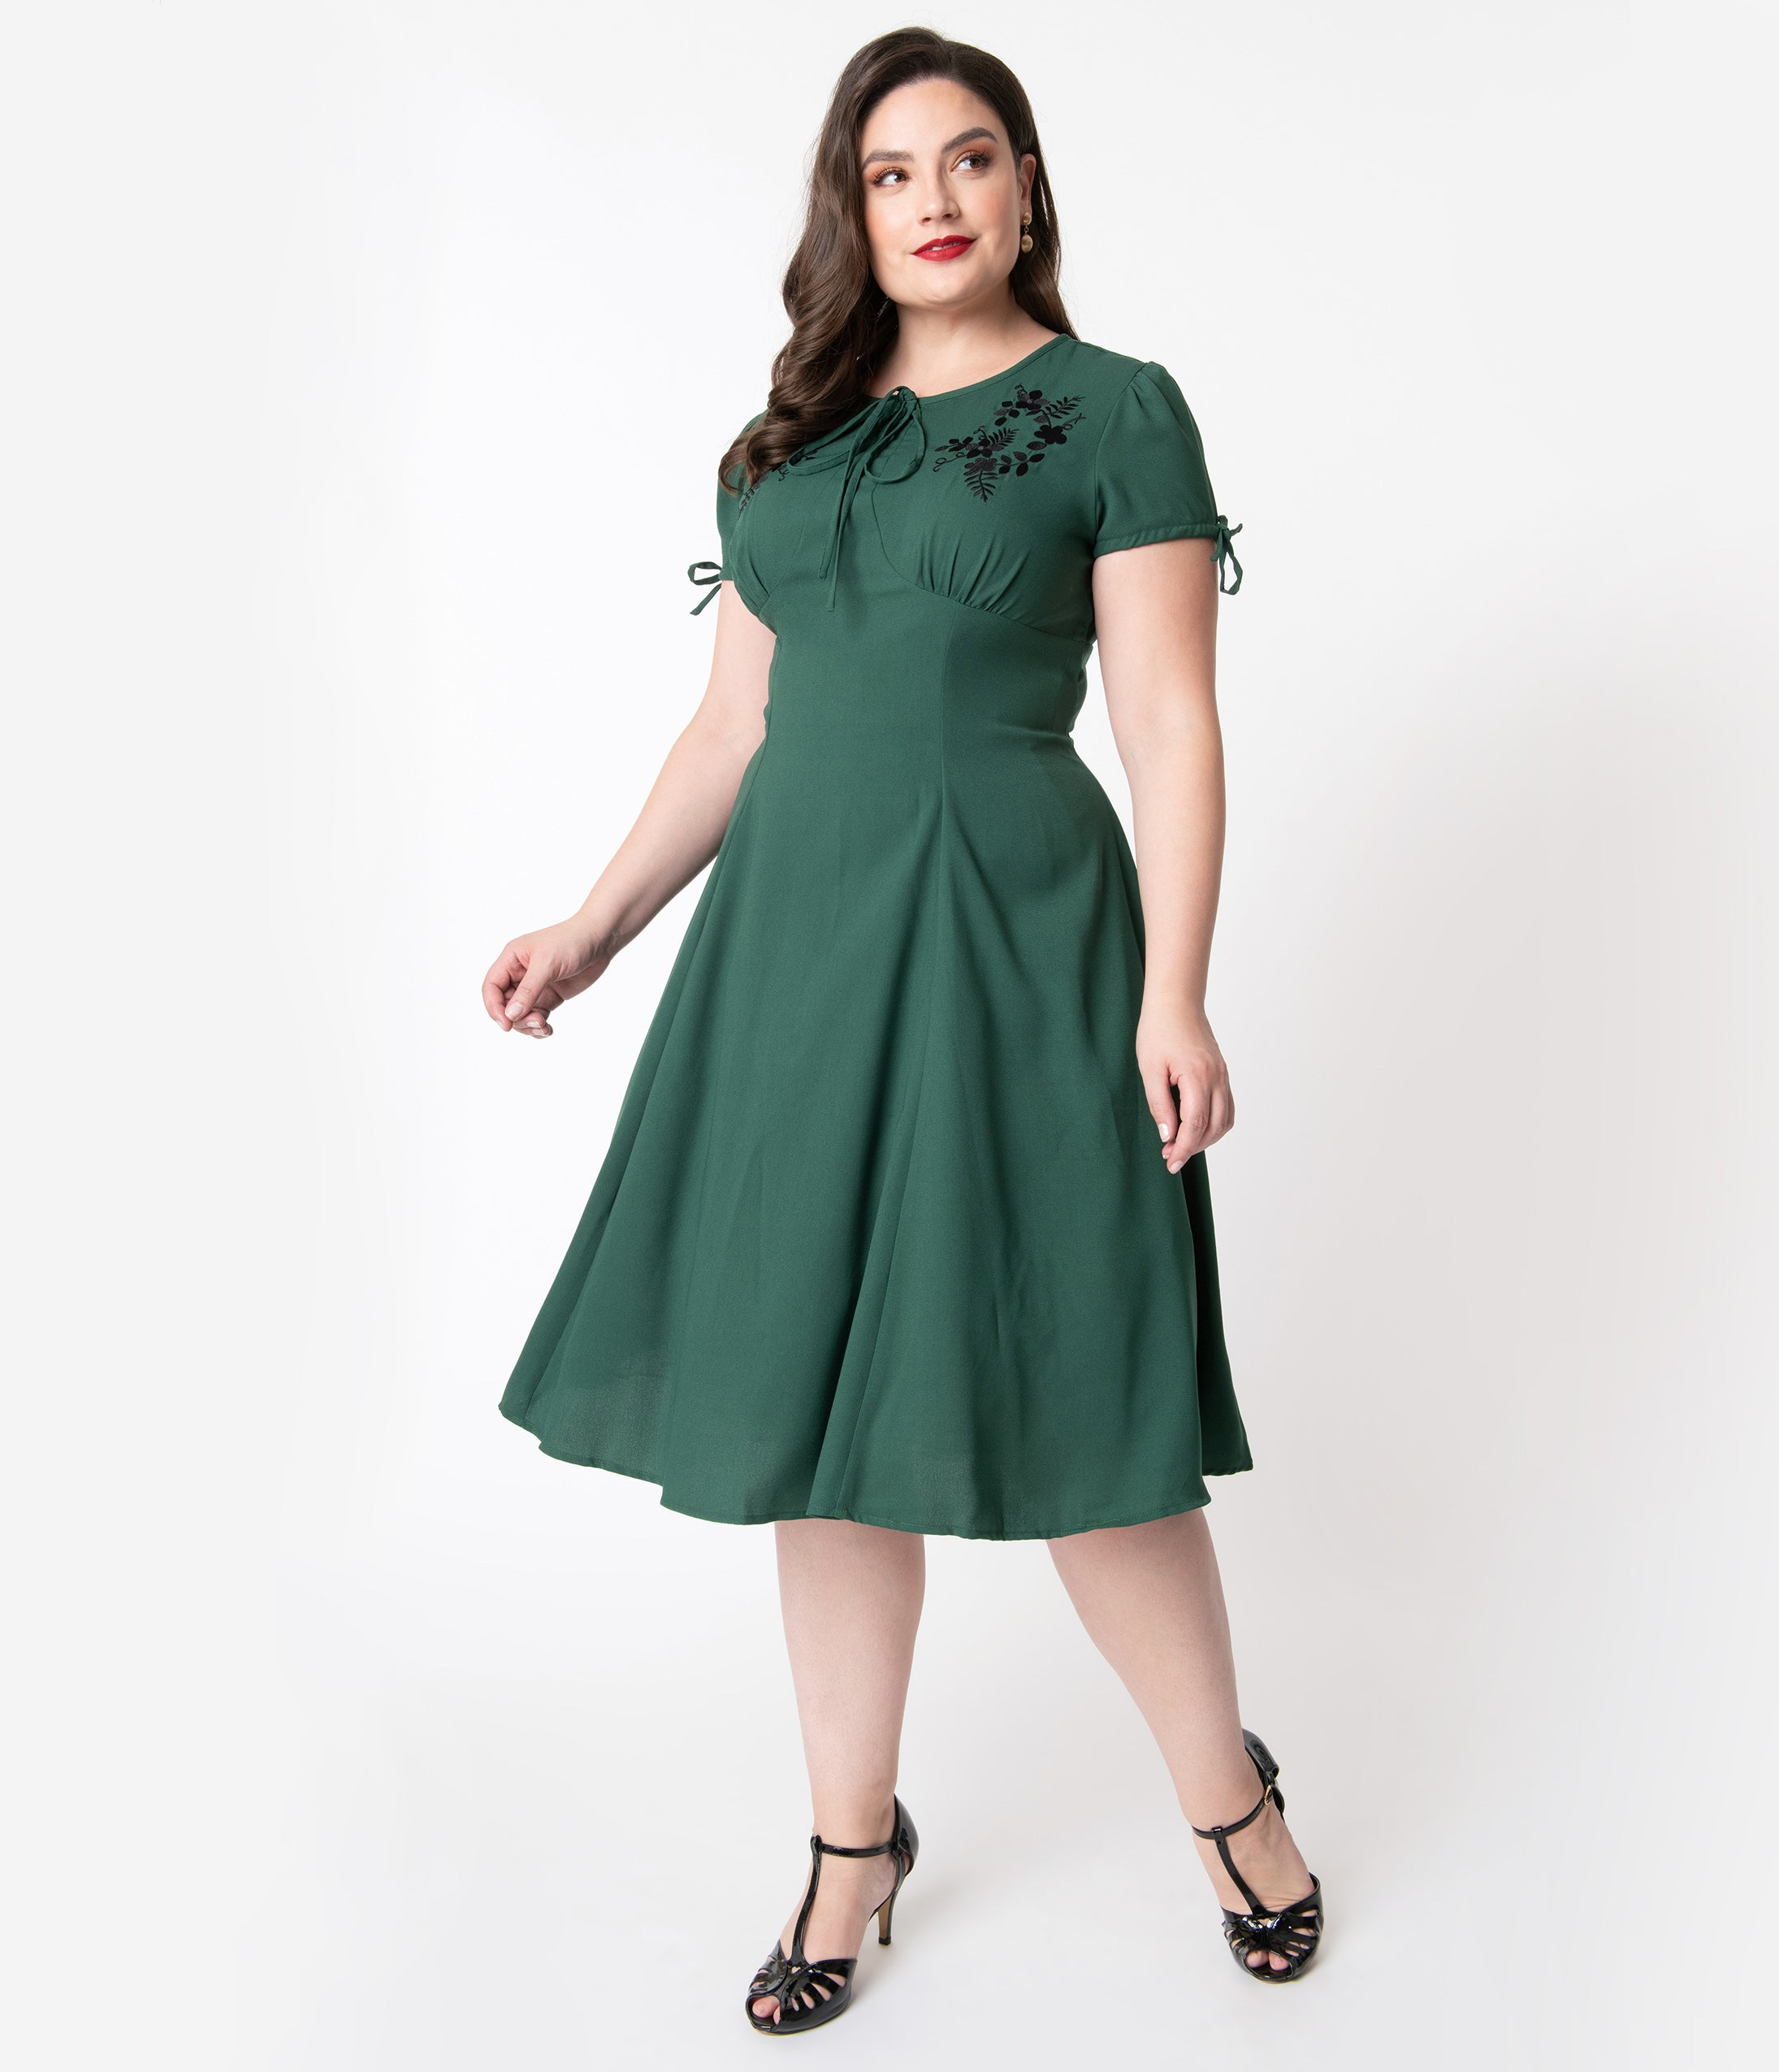 1940s Plus Size Dresses | Swing Dress, Tea Dress Plus Size 1940S Style Emerald Green  Black Embroidered Floral Ava Swing Dress $78.00 AT vintagedancer.com